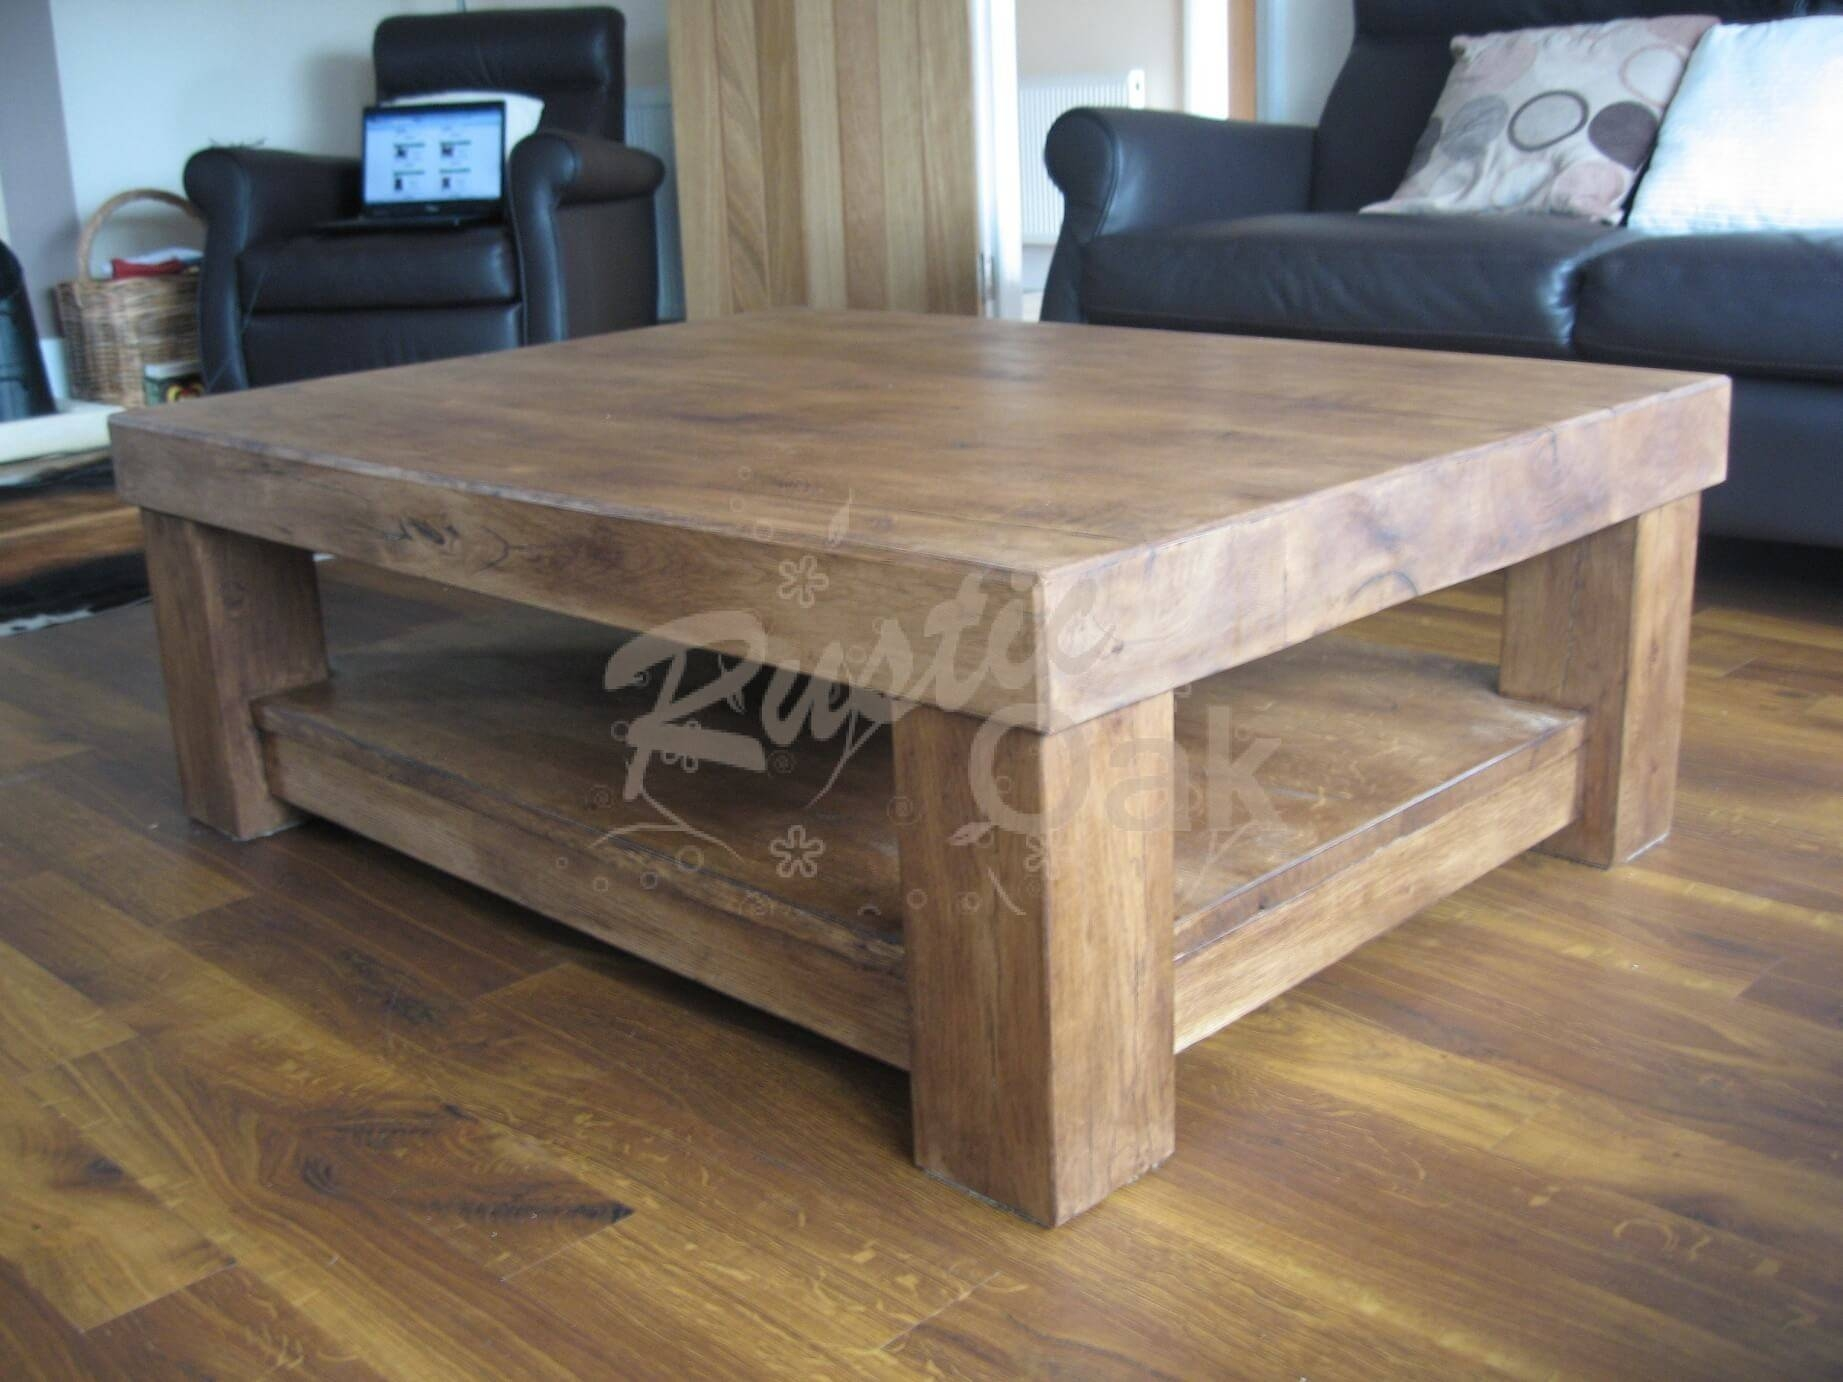 Chunky 4-Leg Coffee Table With Shelf - Rustic Oak pertaining to Oak Coffee Table With Shelf (Image 3 of 15)